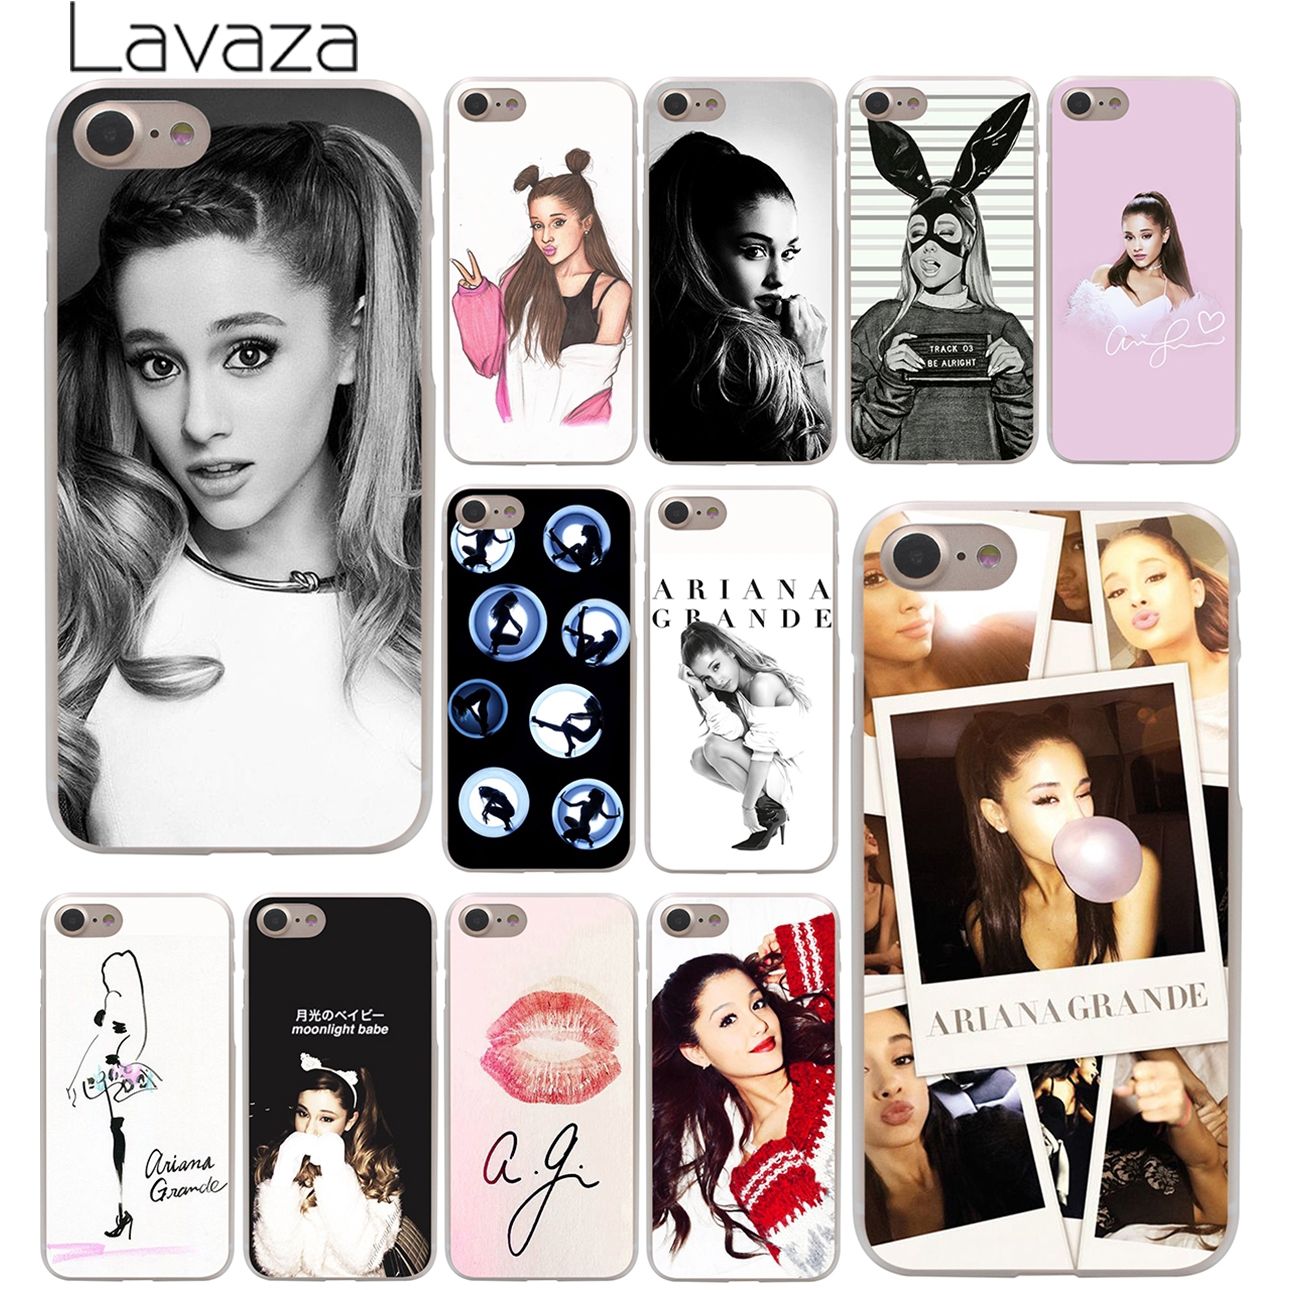 Cat Ar Ariana Grande Hard Case Transparent for iPhone 7 7 Plus 6 6s Plus 5 5S SE 5C 4 4S